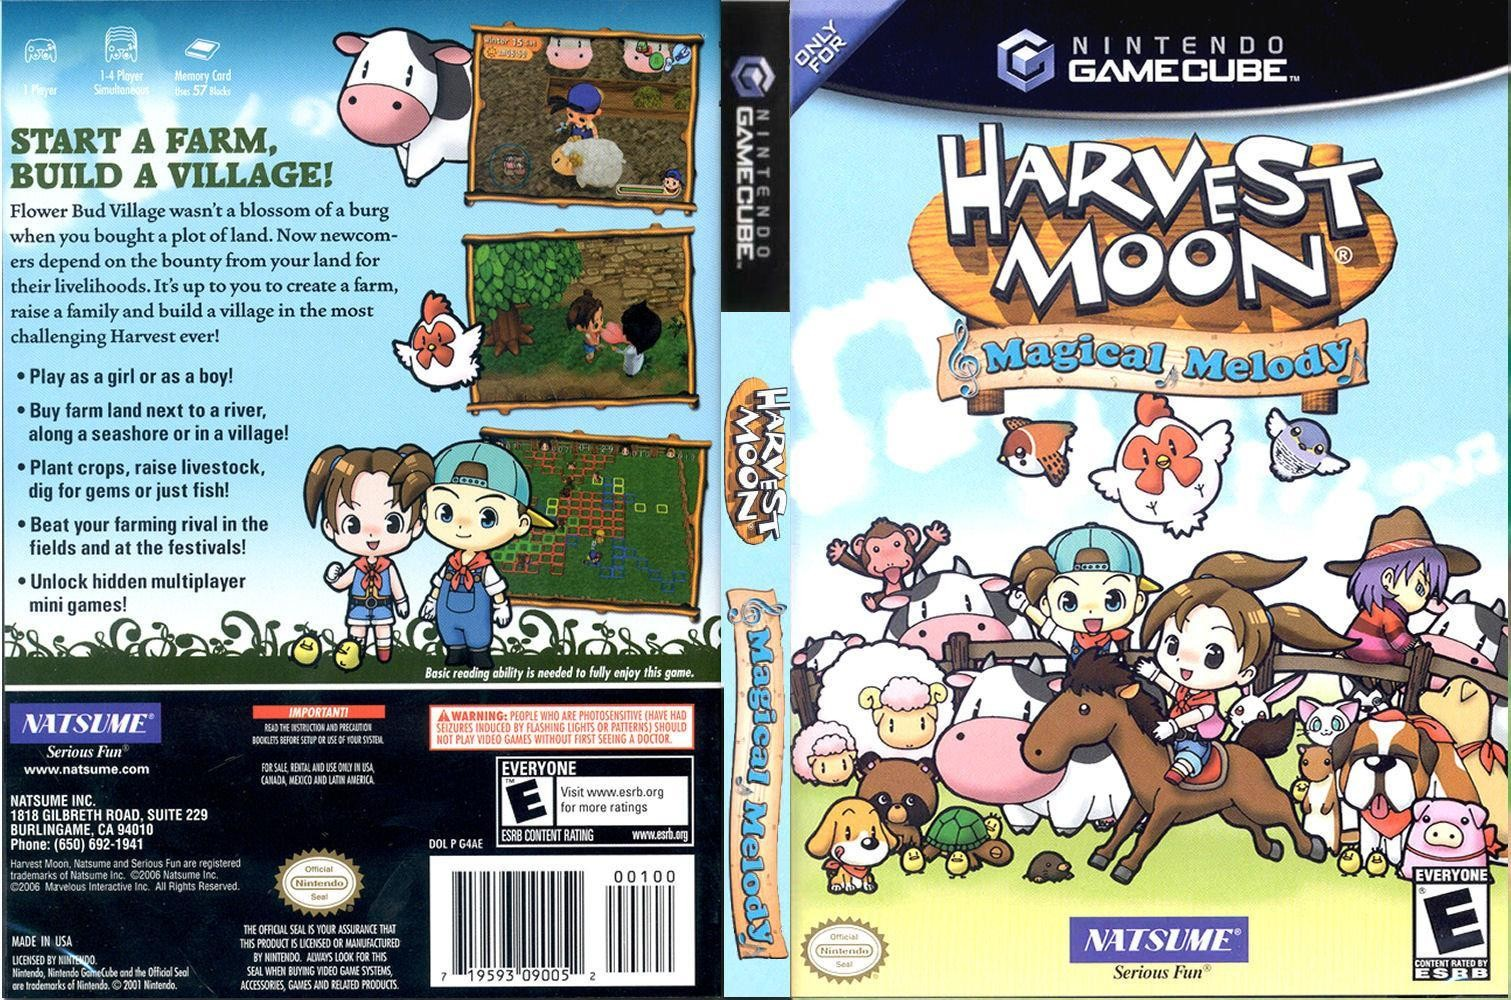 harvest moon magical melody ending a relationship